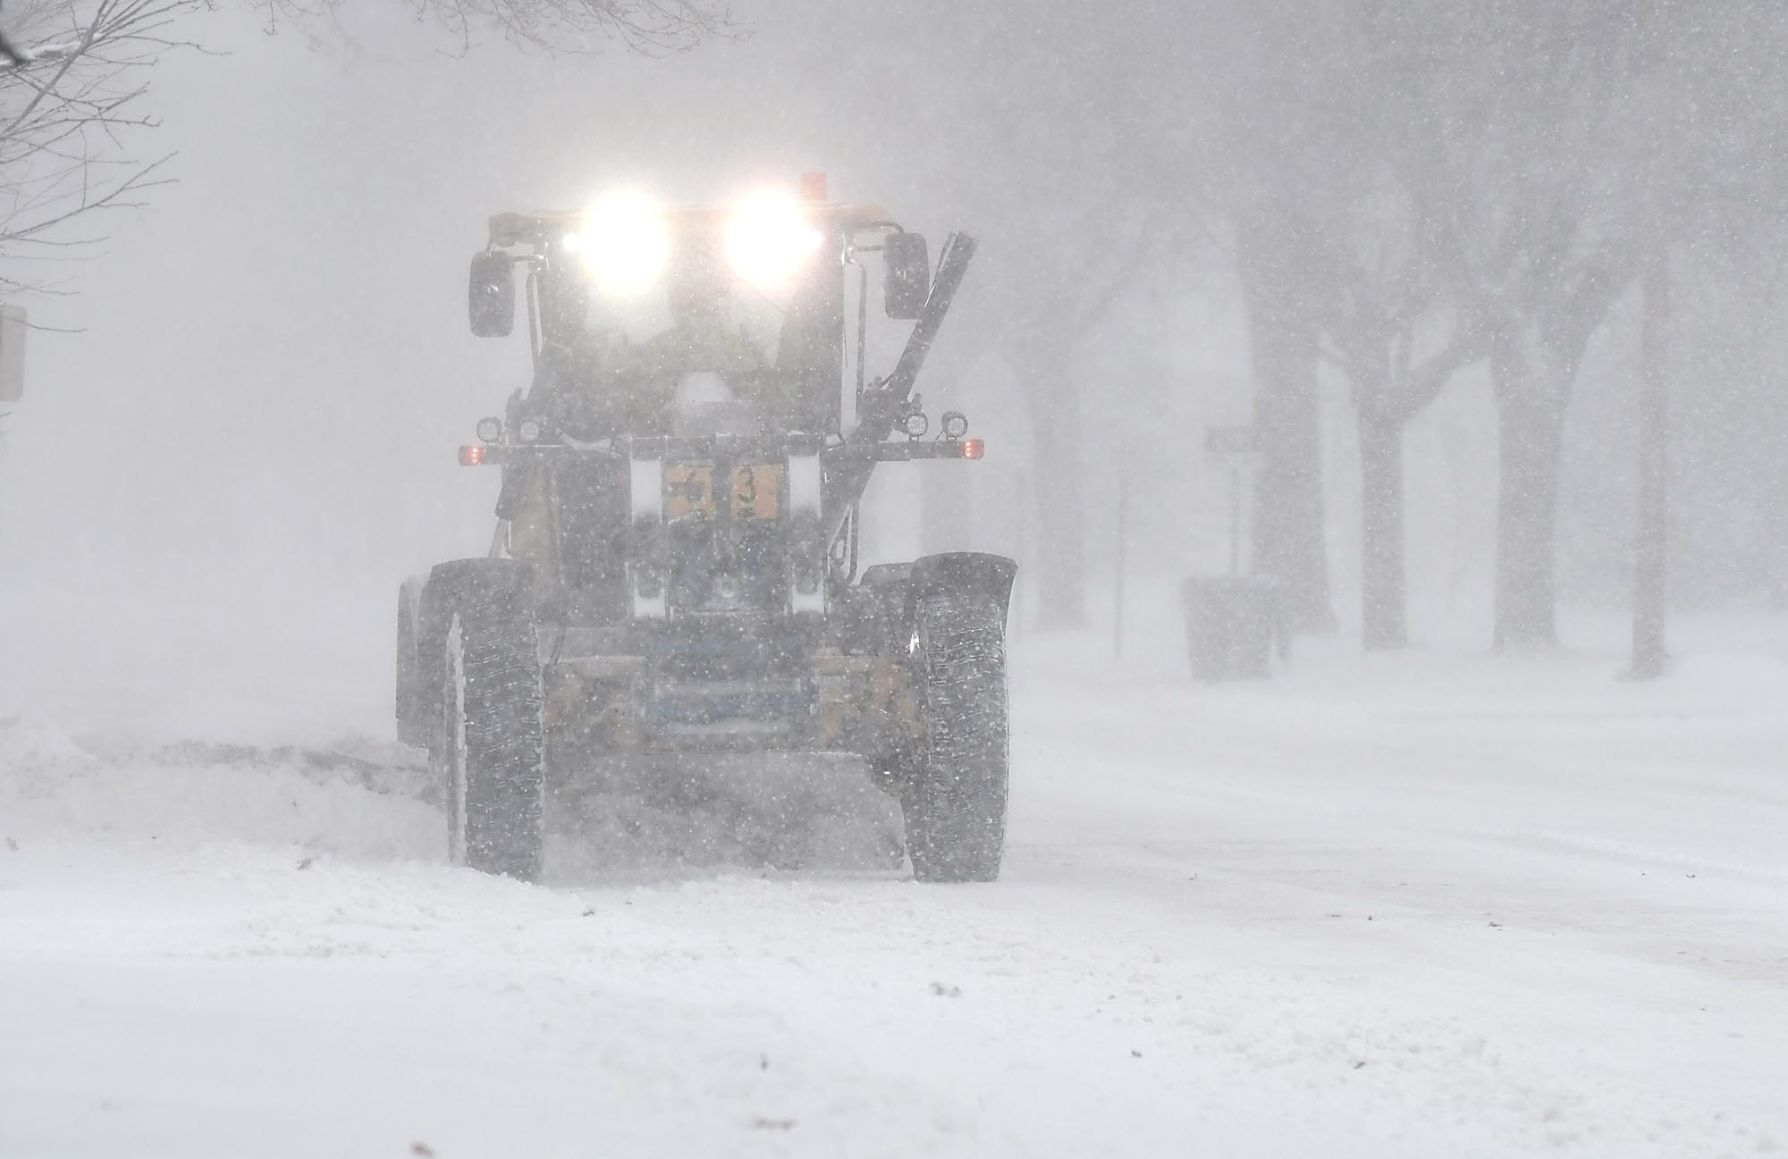 A City Of Mankato Snowplow Clears The Edge Of Broad Street During The  Snowstorm Monday. Photo By Pat Christman